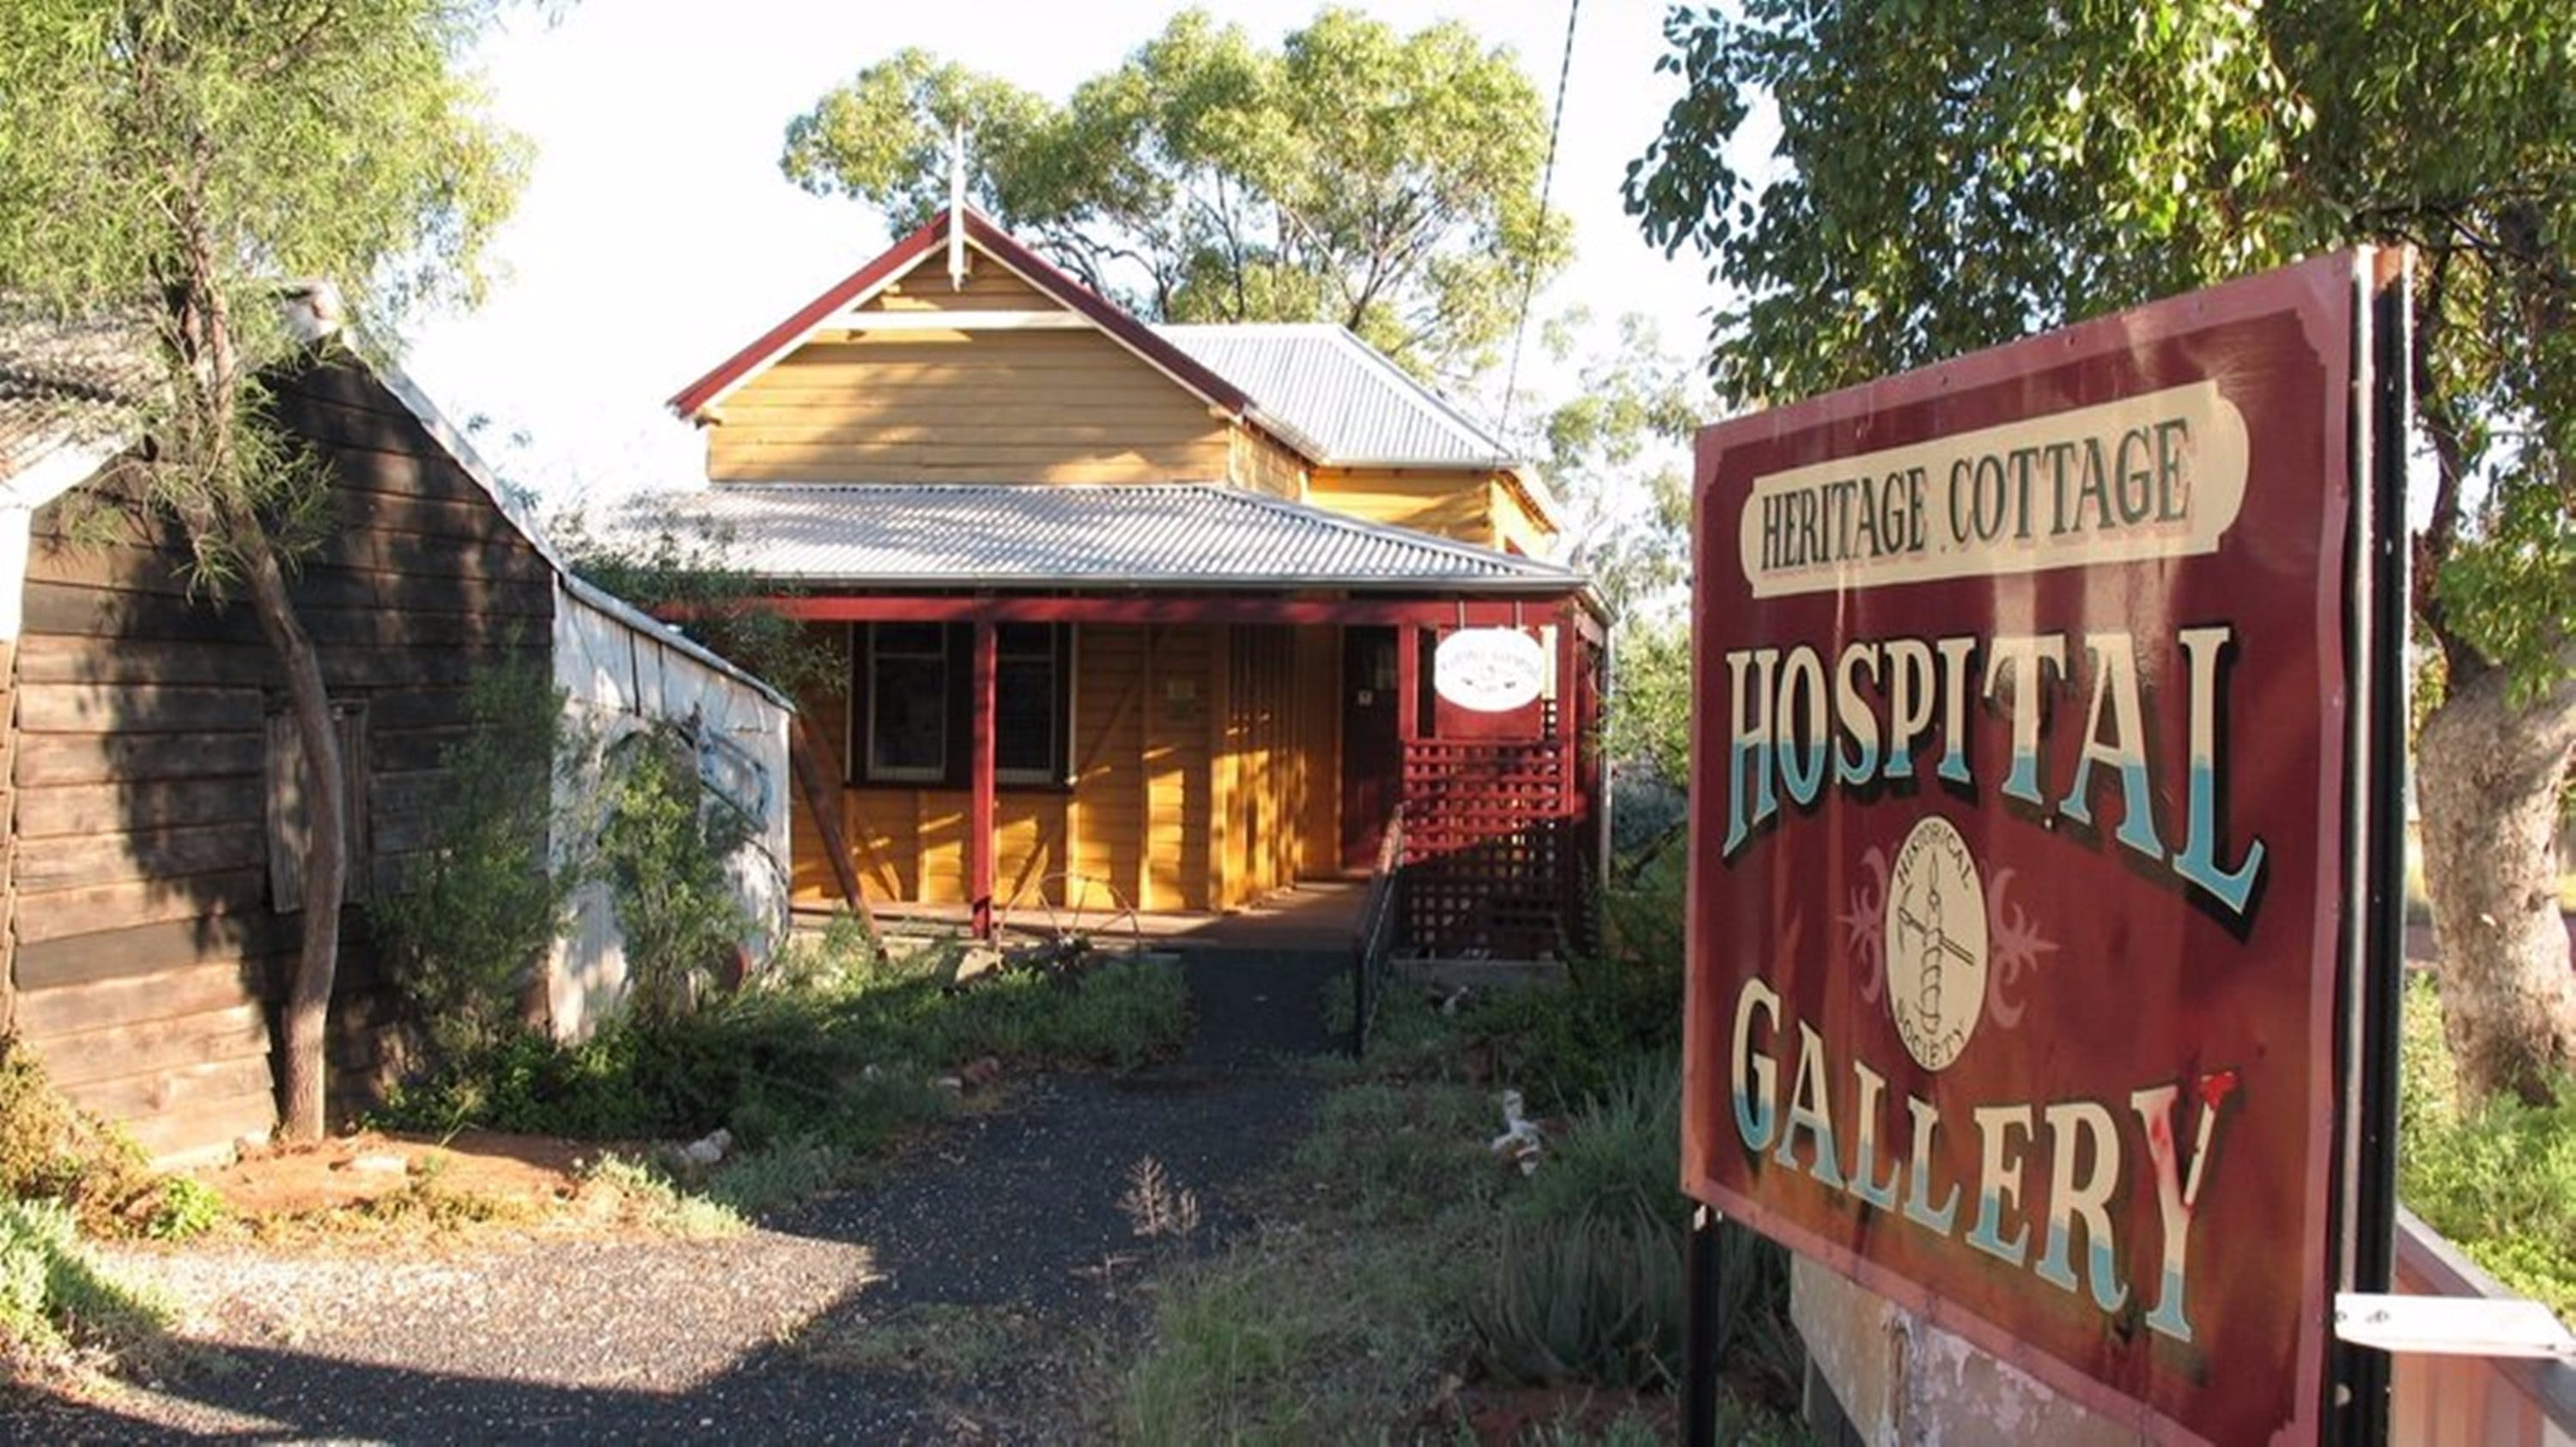 Lightning Ridge Heritage Cottage - Accommodation Perth